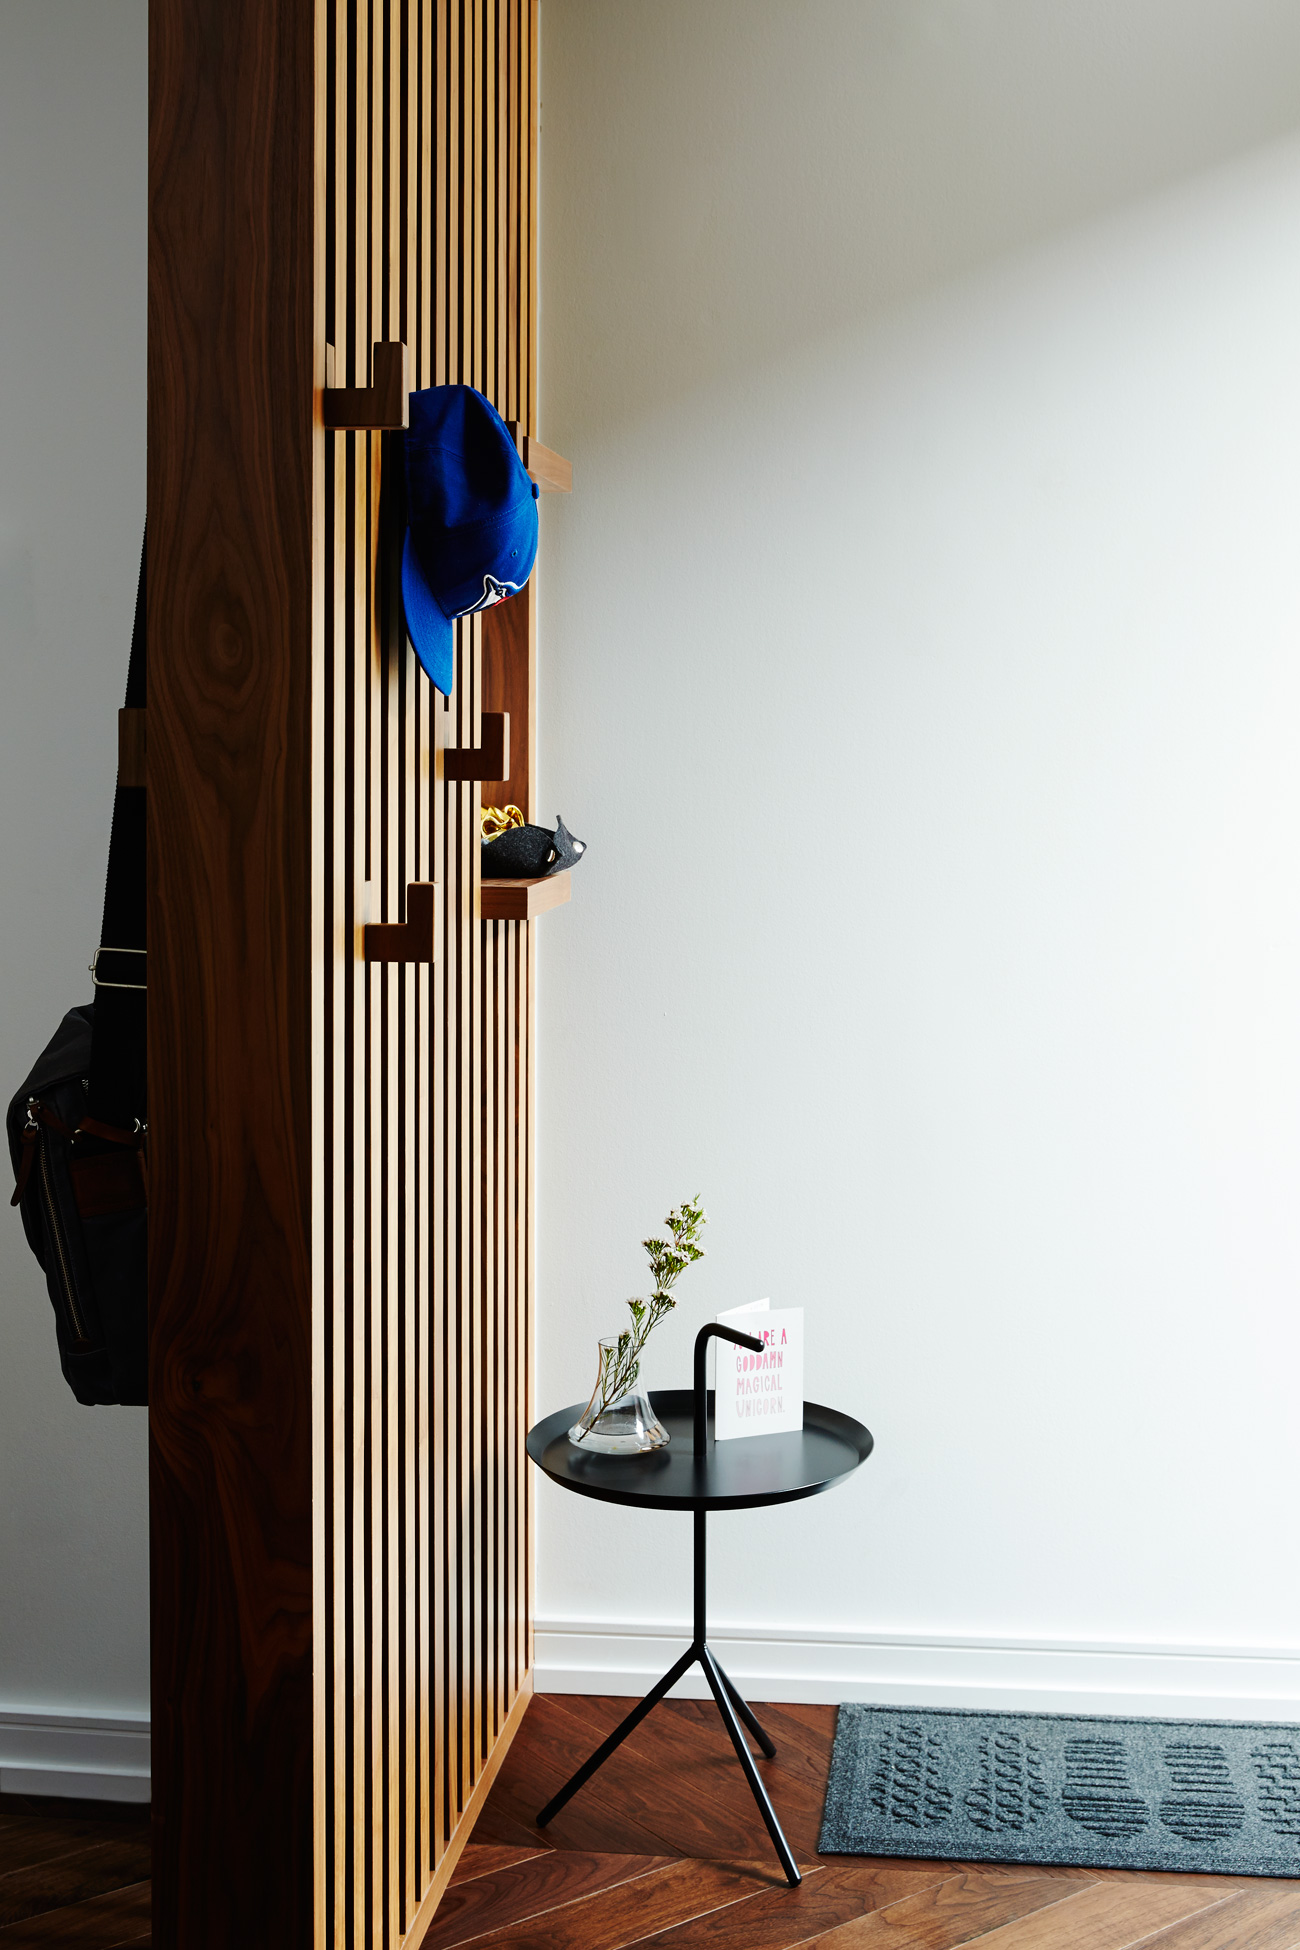 To create a foyer in the tiny entrance, Milne designed a walnut screen with vertical coat hooks. Side table from Klaus.